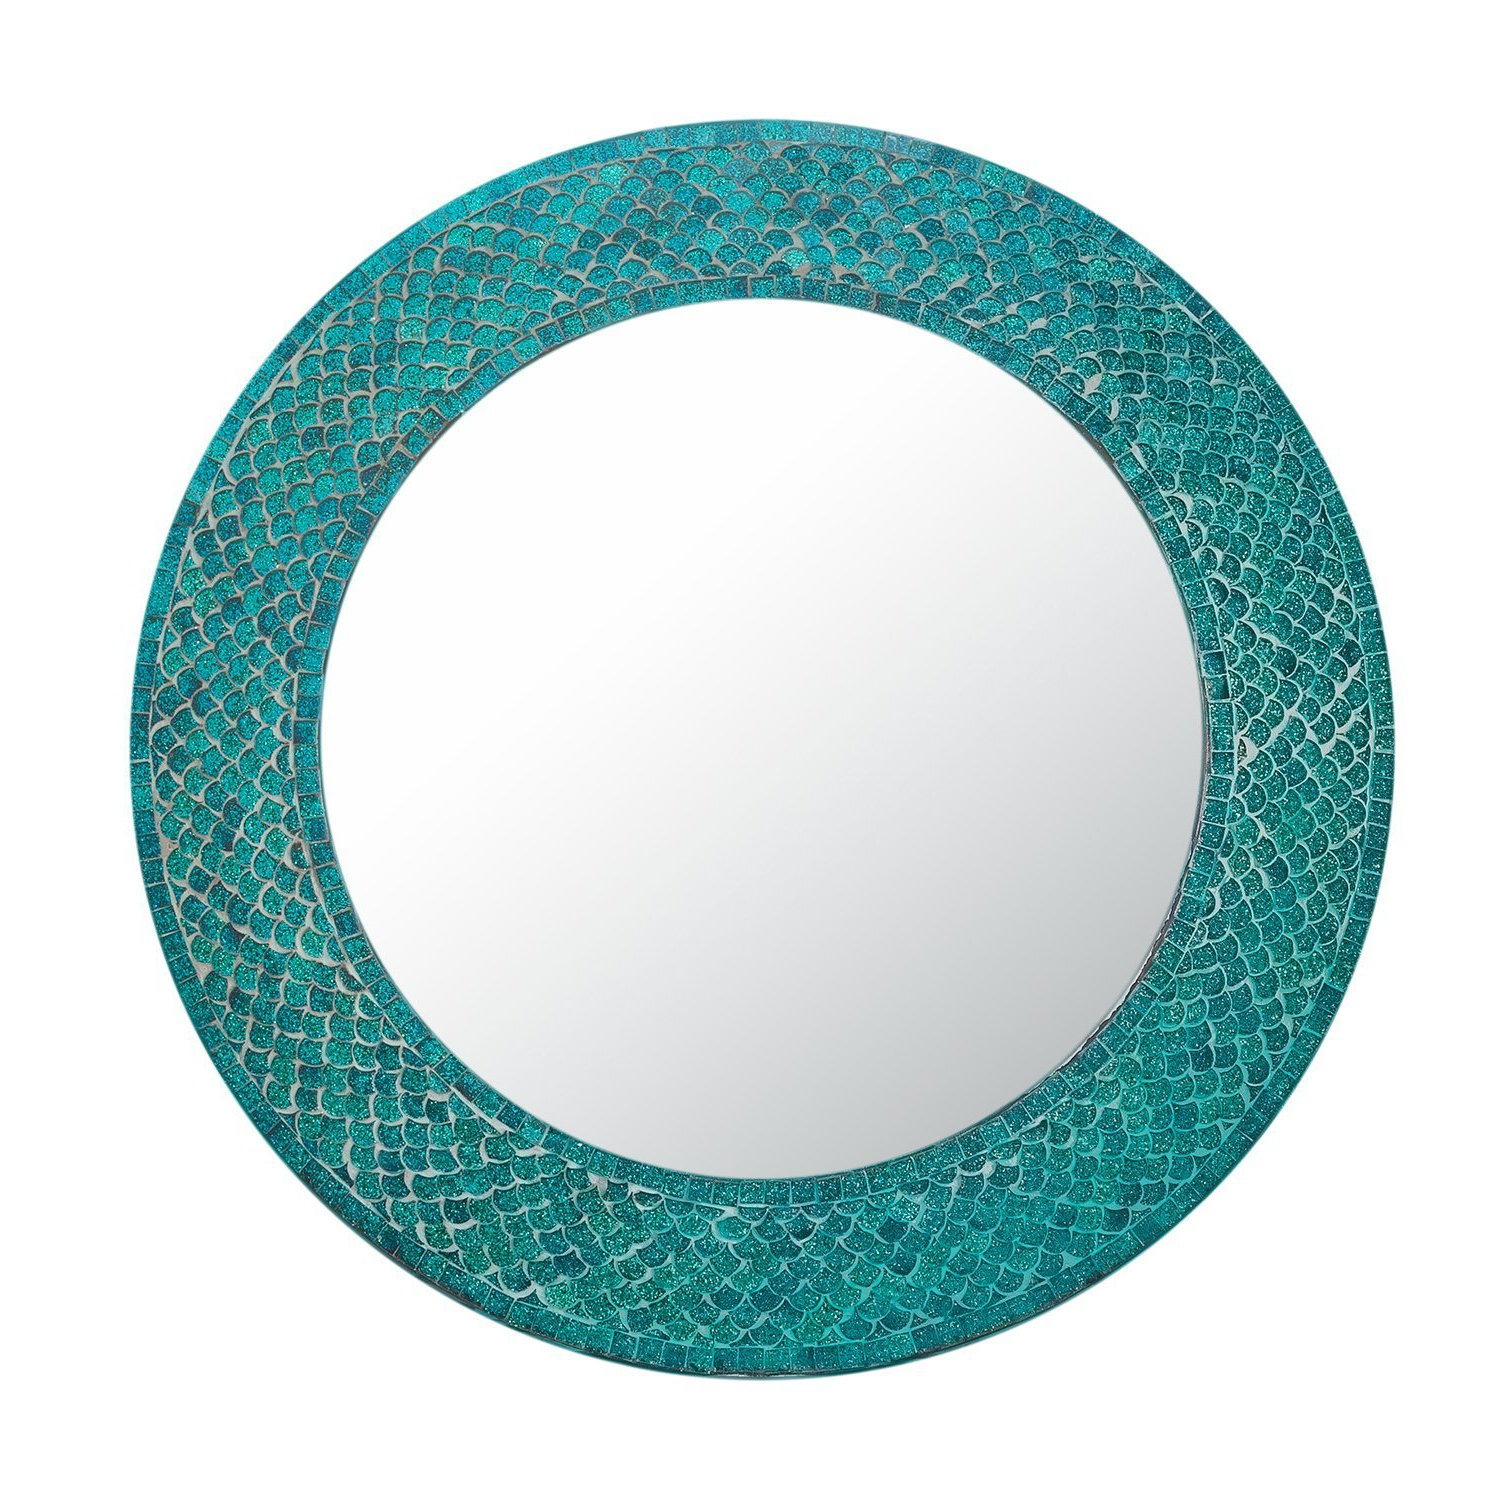 Most Recent Mermaid Wall Mirrors For Trend Shimmering Mermaid Glass Mosaic Tile Wall Mirror (View 9 of 20)